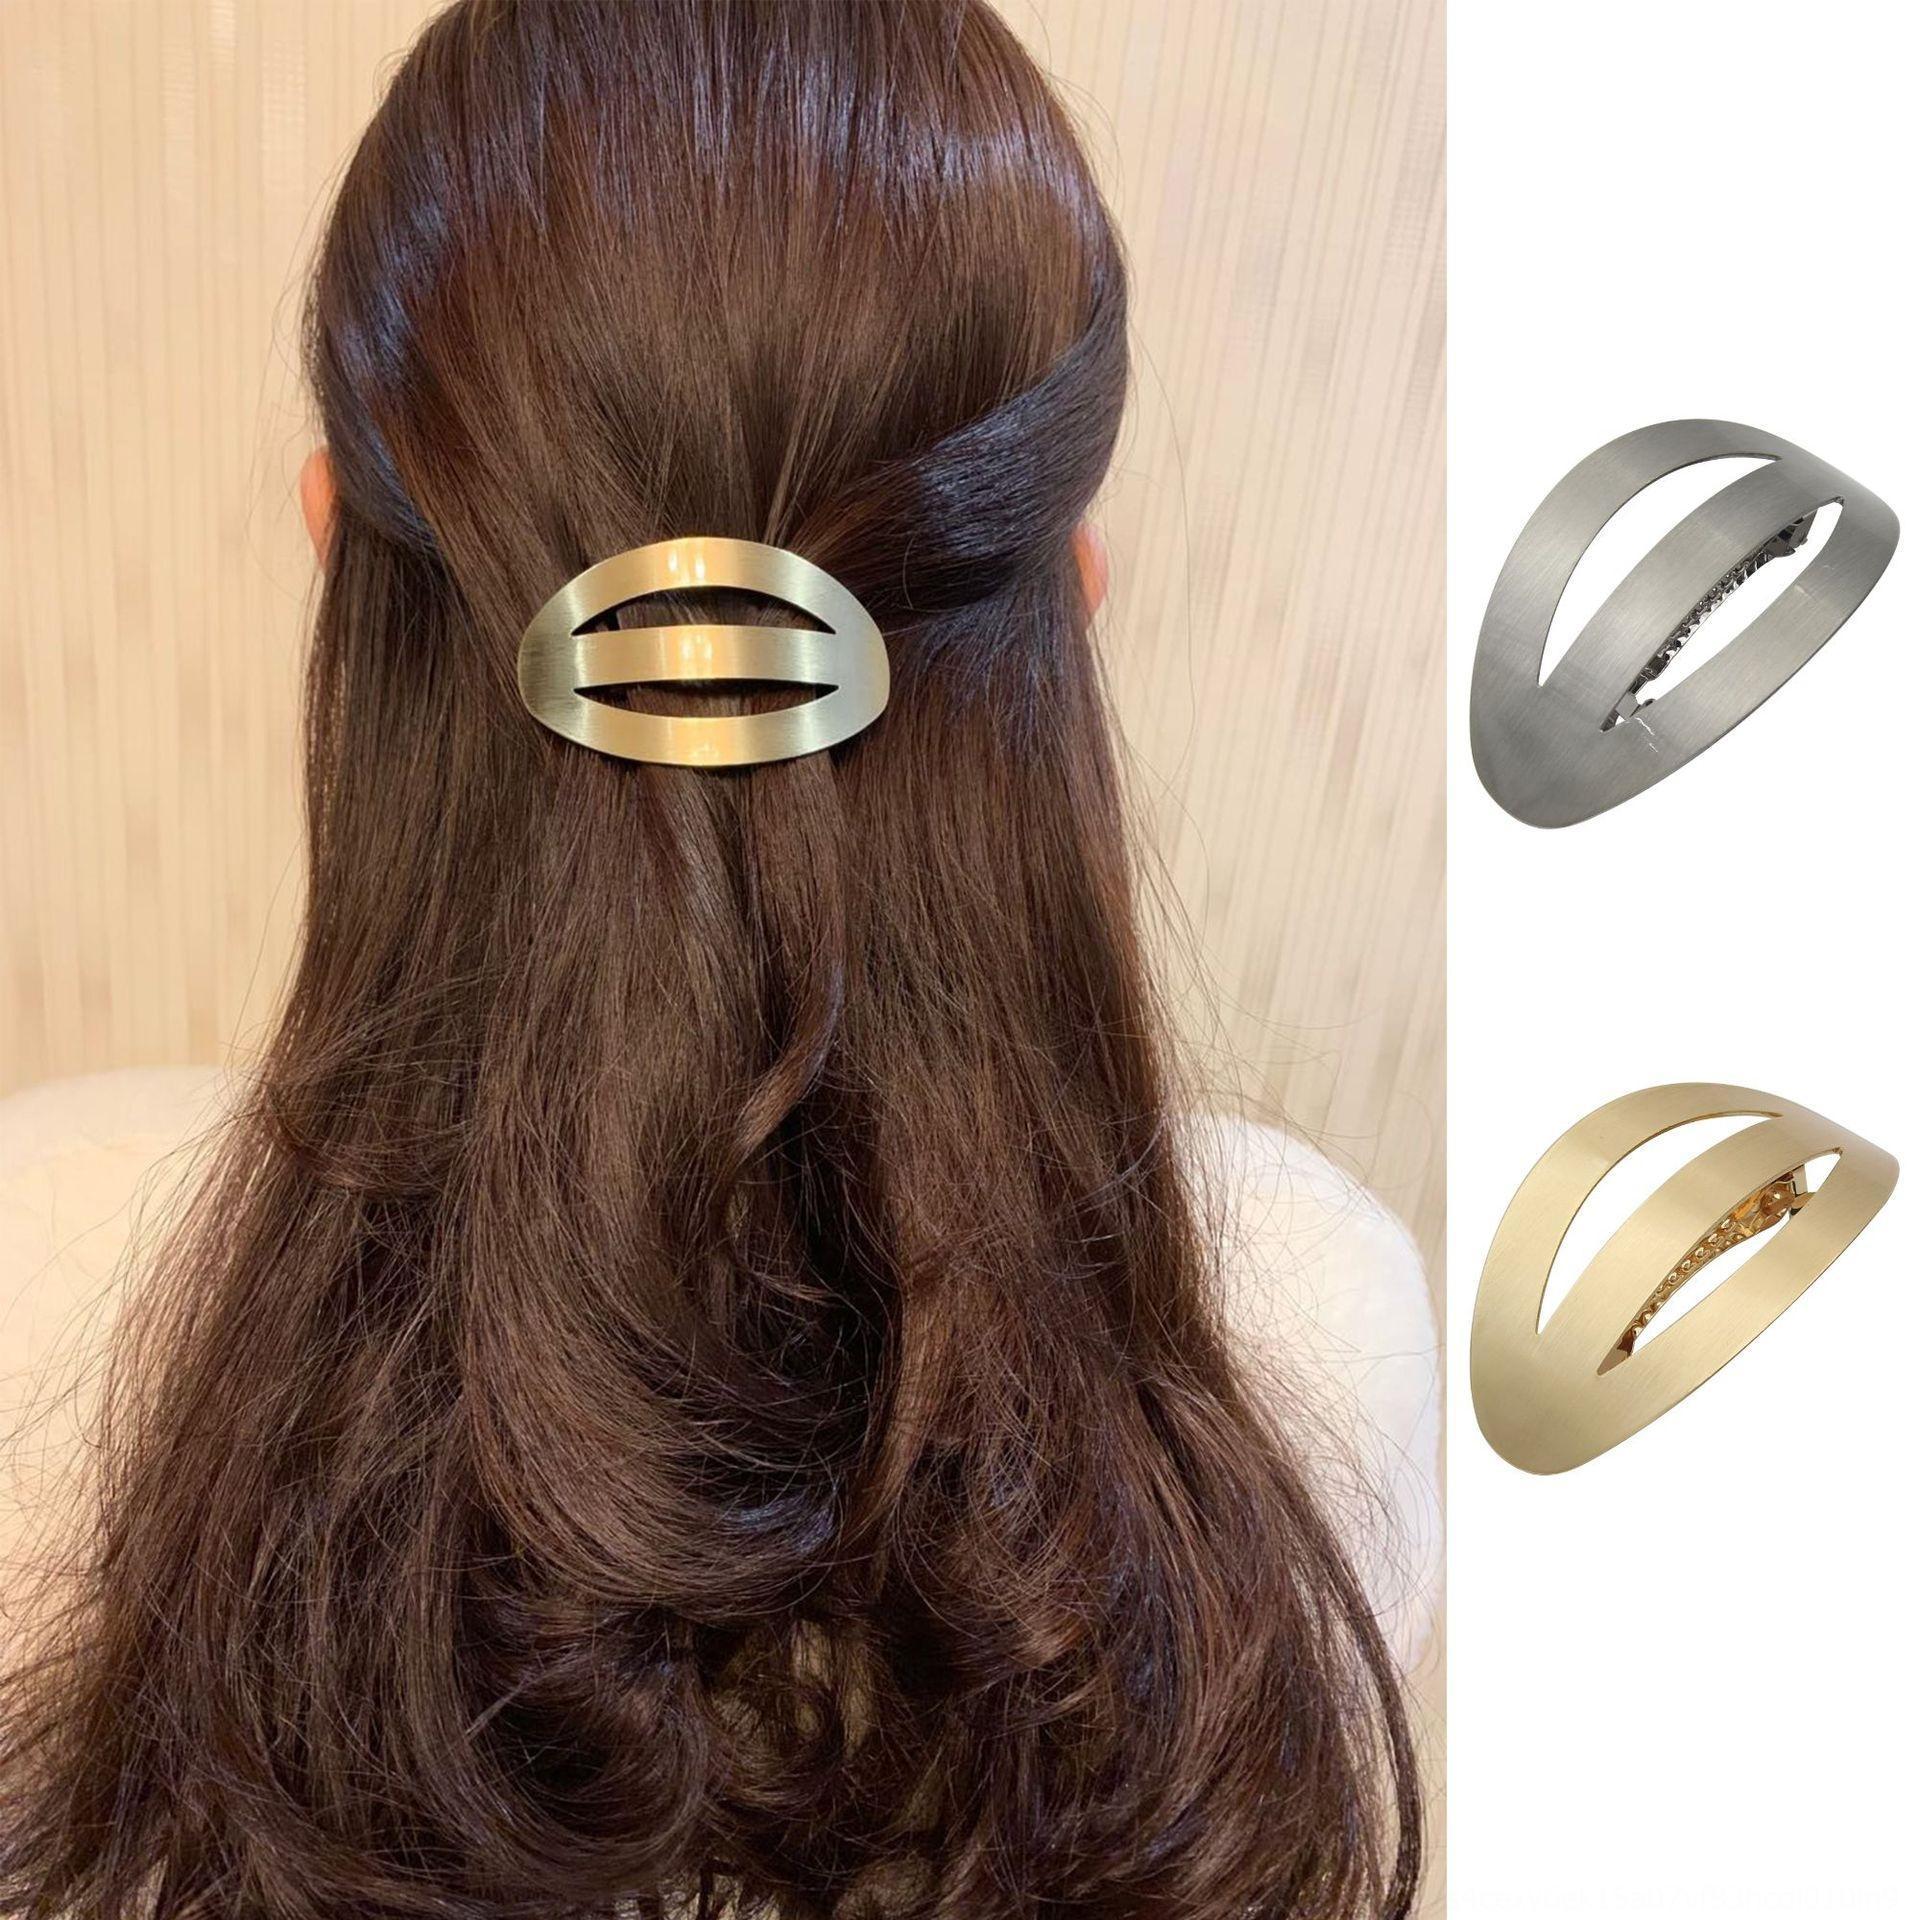 nsvbo Korean simple cold temperament hairpin korean Simple geometric Japanese-shaped hollow-out arc-shaped metal brushed hairpin spring clip